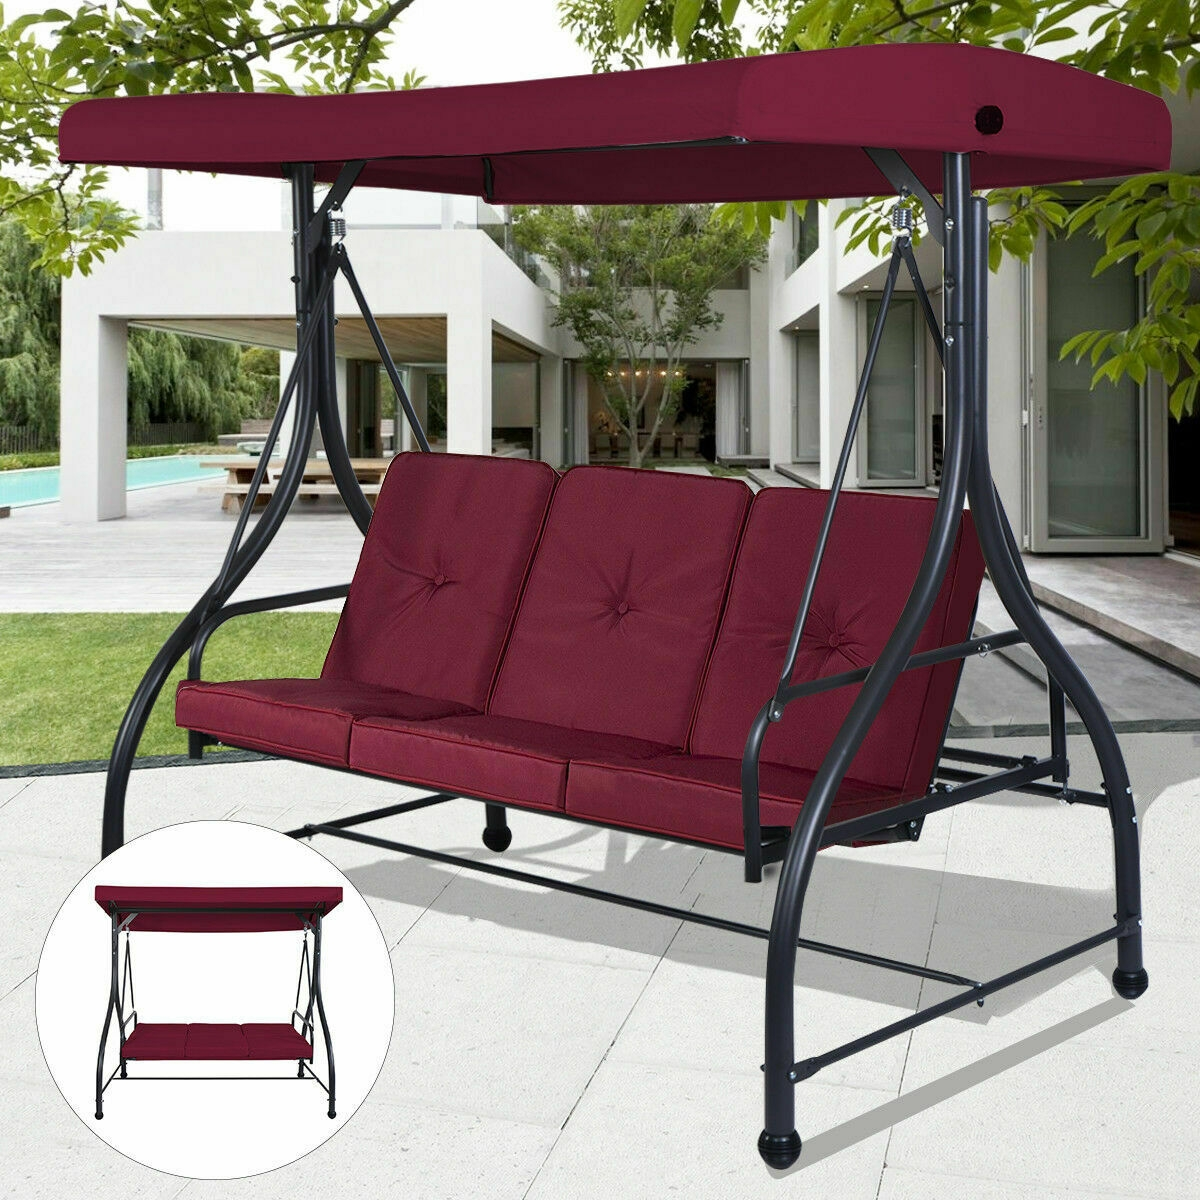 converting outdoor swing canopy hammock 3 seats patio deck furniture wine red